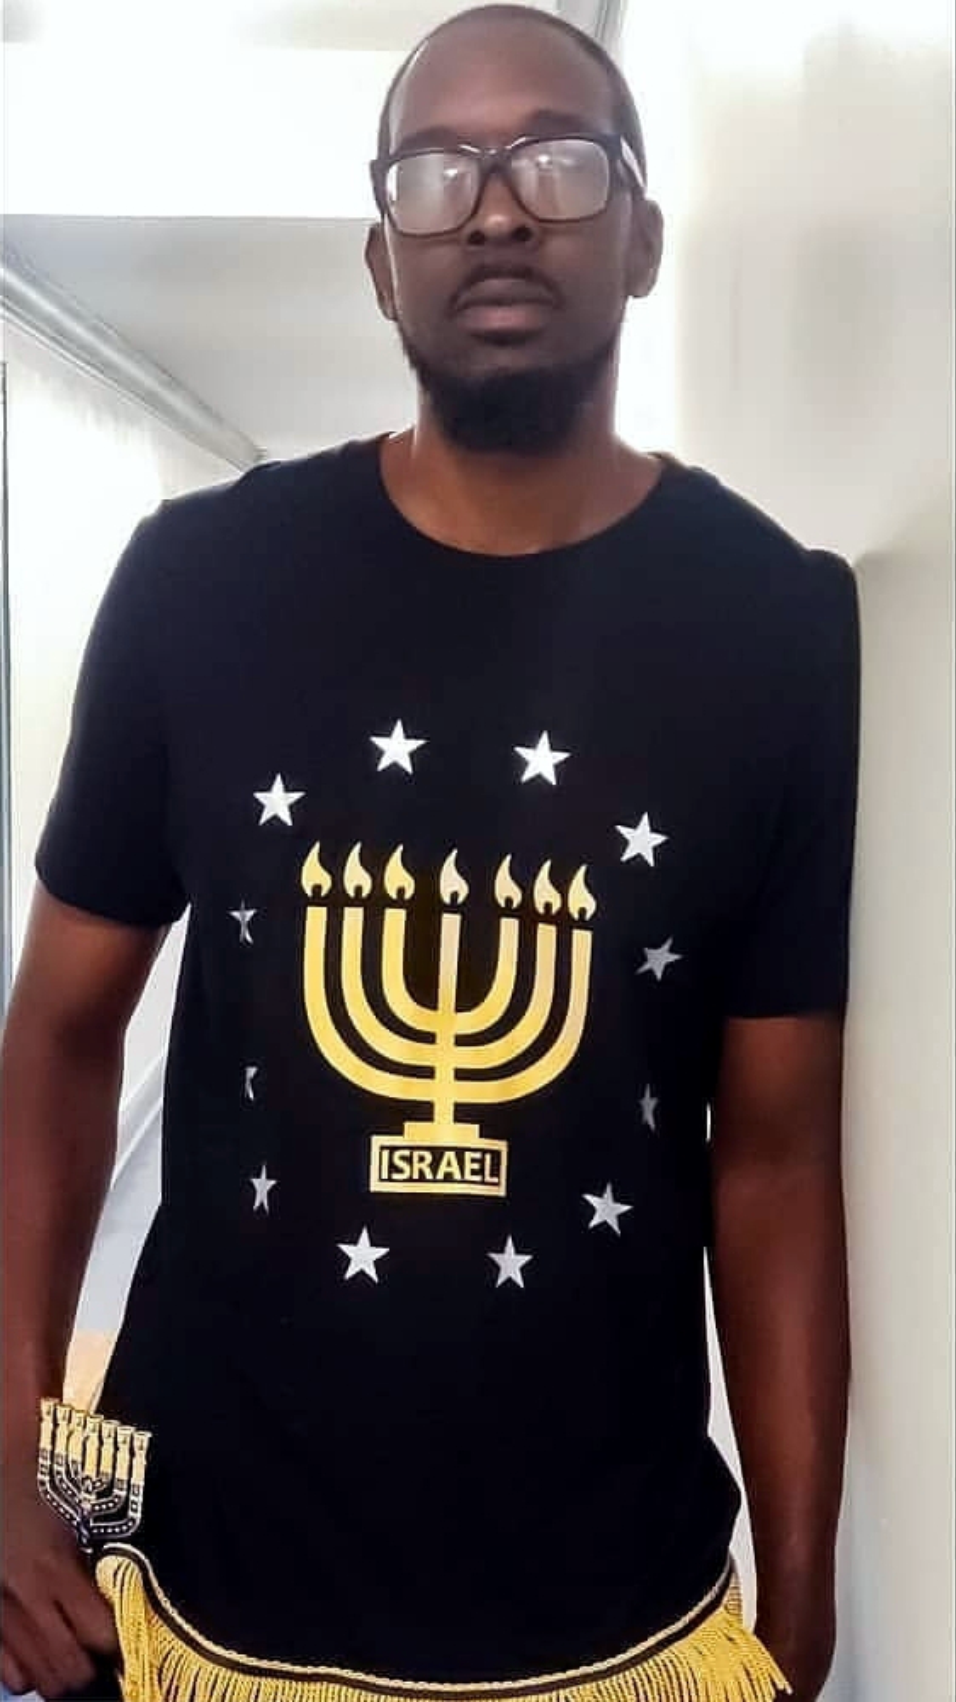 Menorah with Stars tshirt